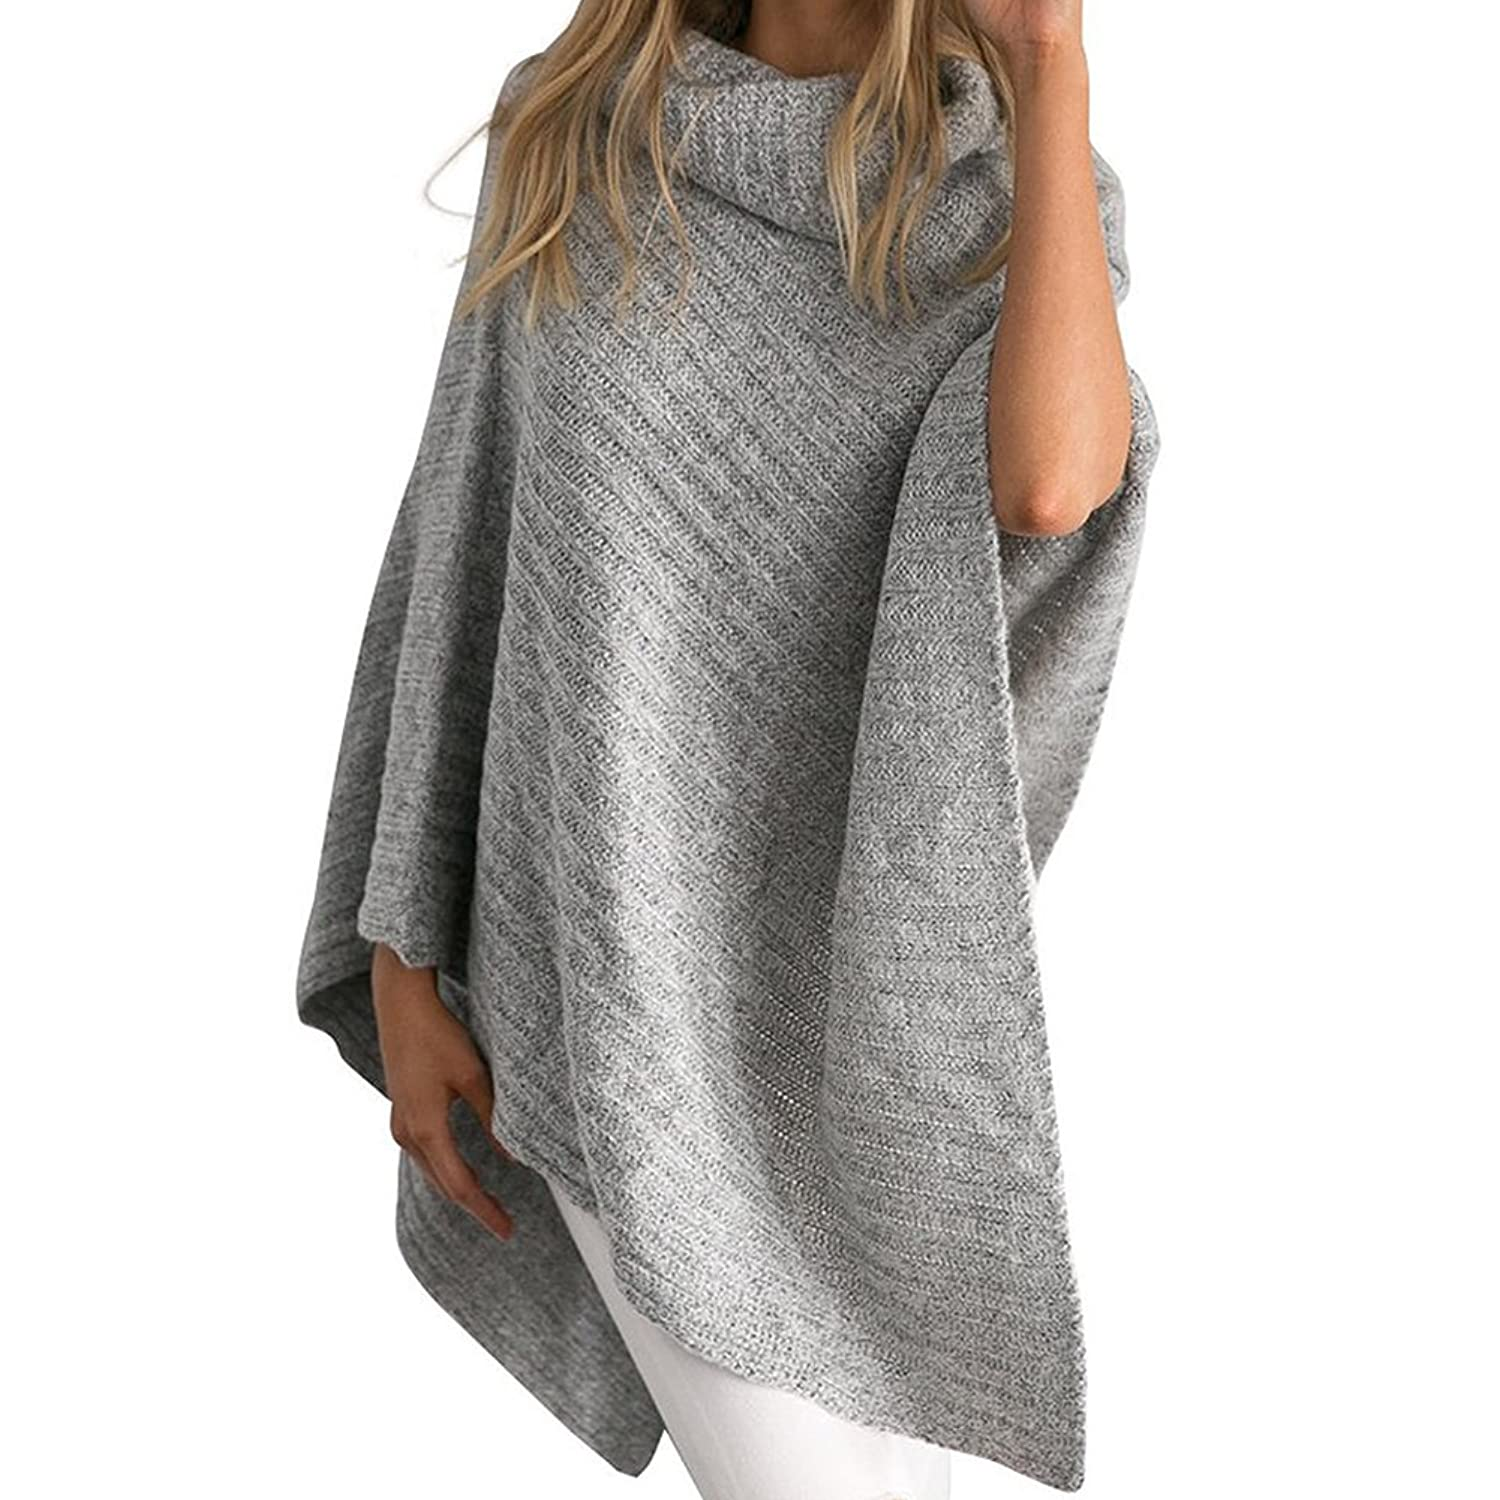 Fashion Story Women's Chic Turtleneck Knitted Poncho Pullovers Sweater